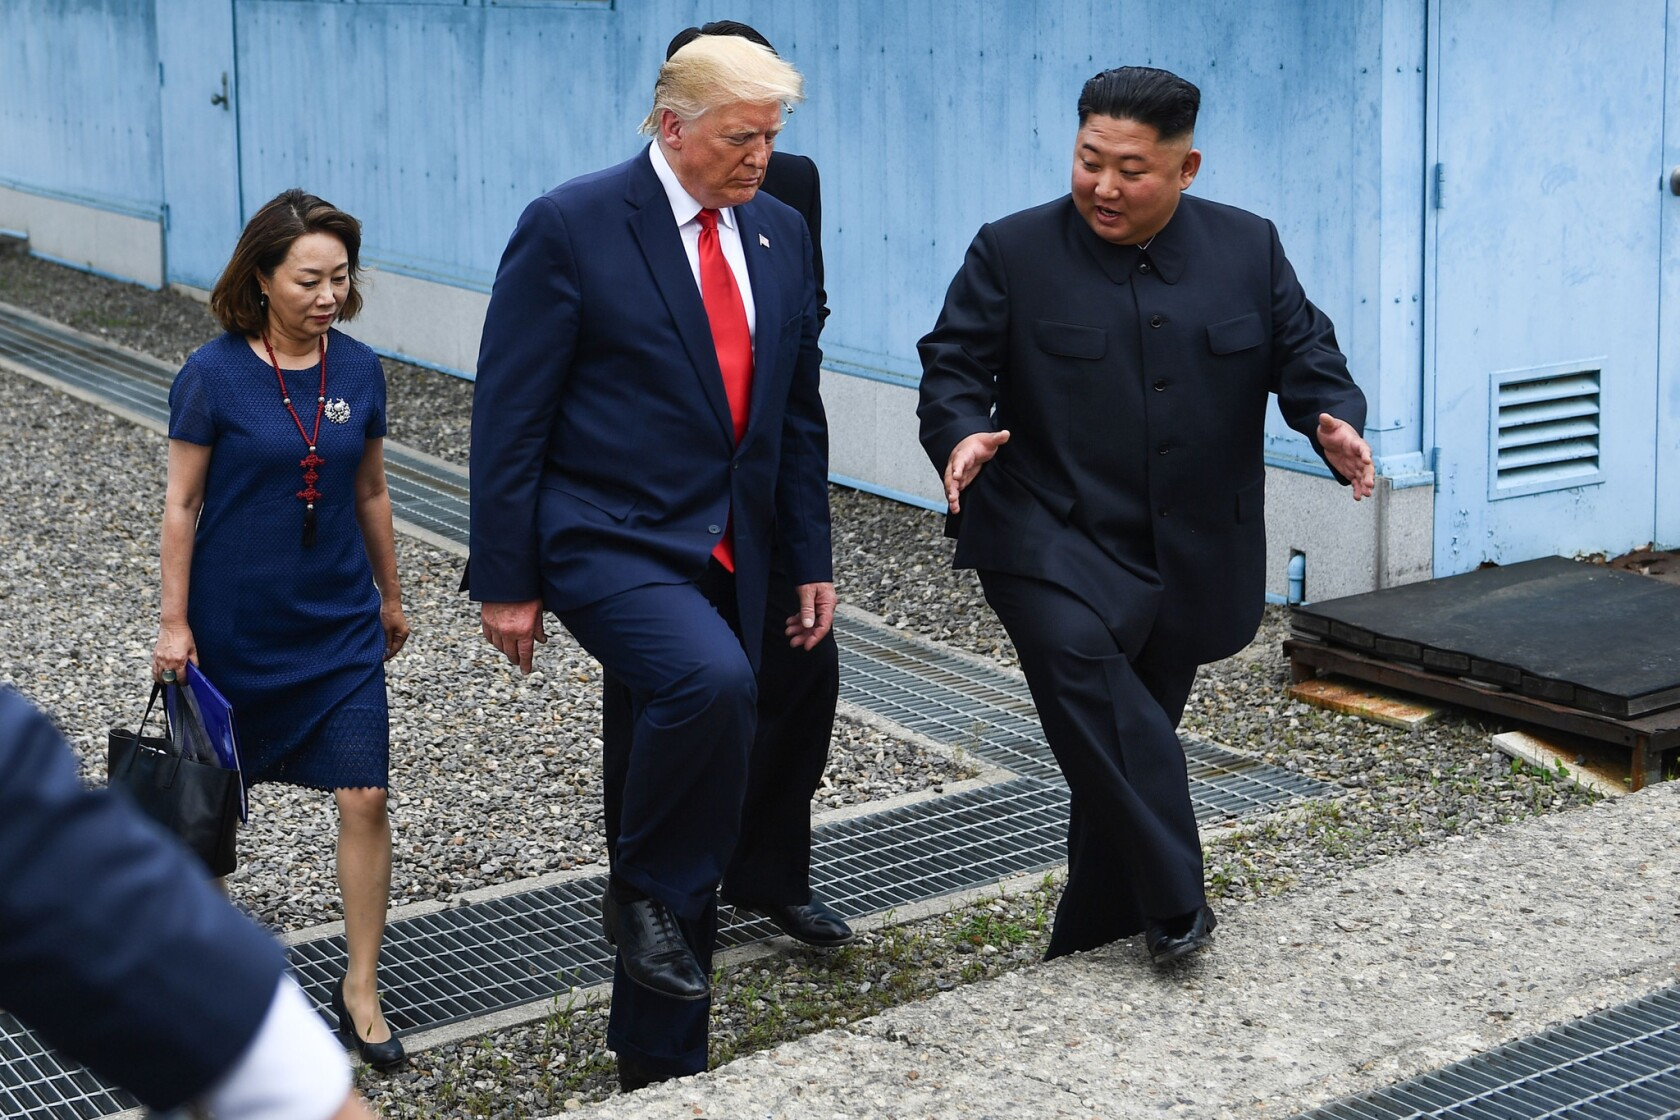 Trump Meets Kim Jong Un At Dmz And Becomes First Sitting